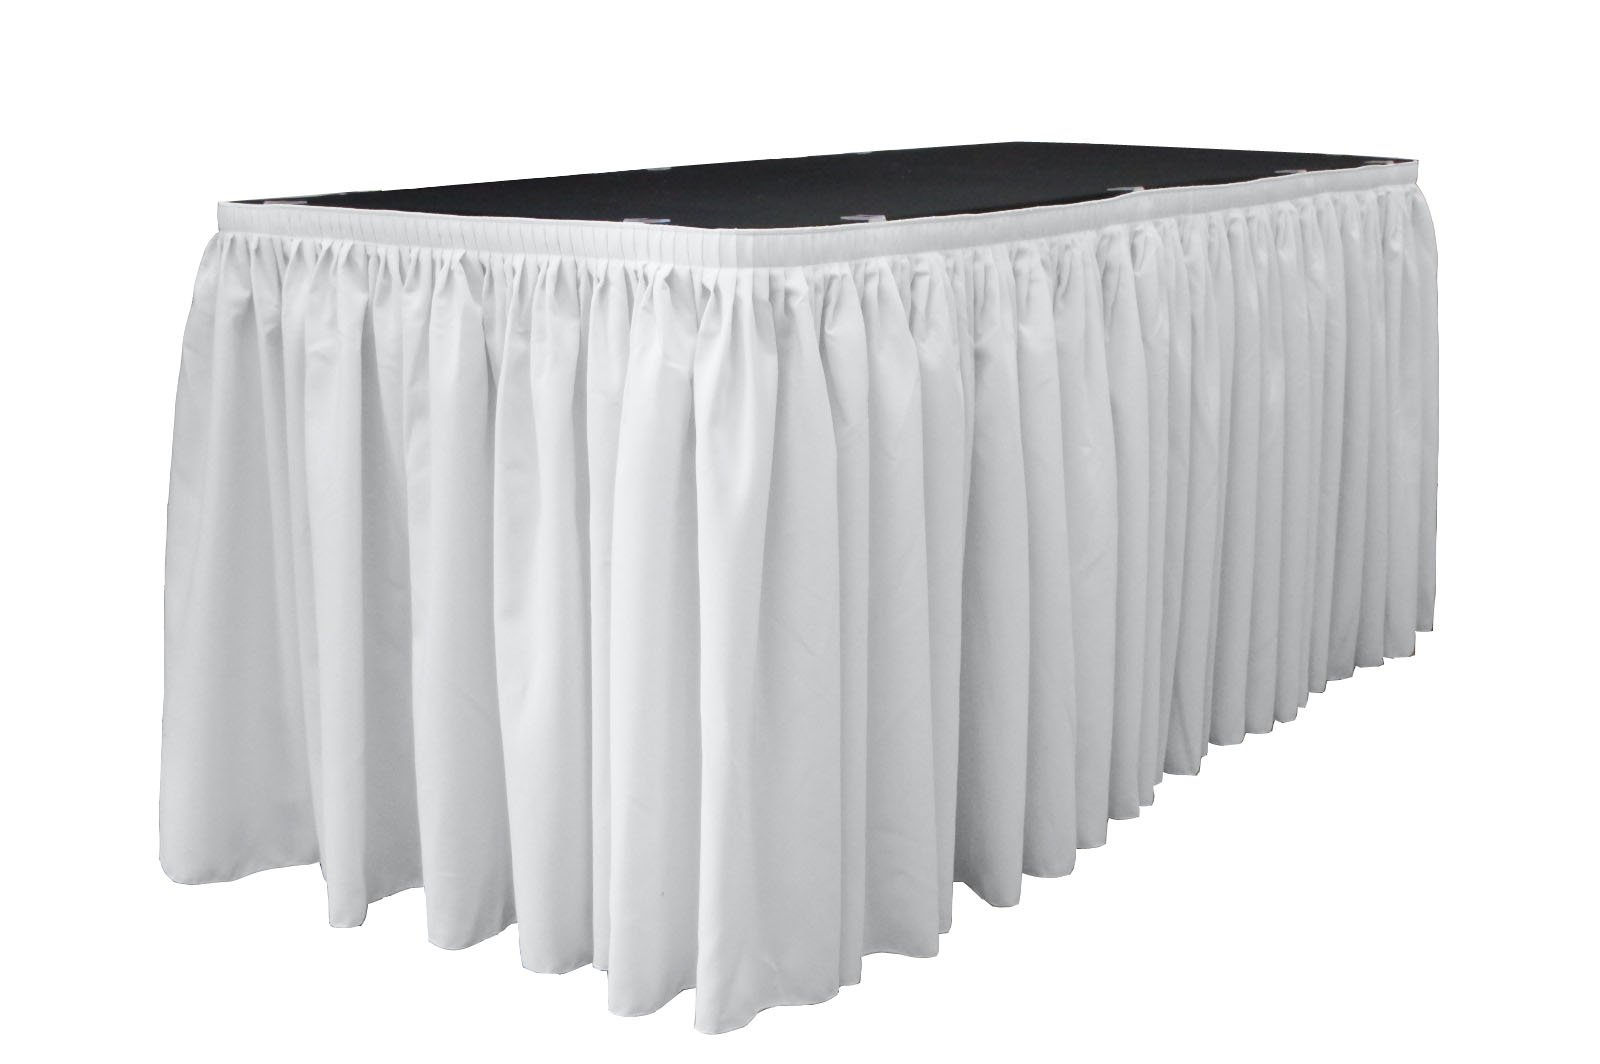 LA Linen Polyester Poplin Pleated Table Skirt with 10 Large Clips, 21-Feet by 29-Inch, White. by LA Linen